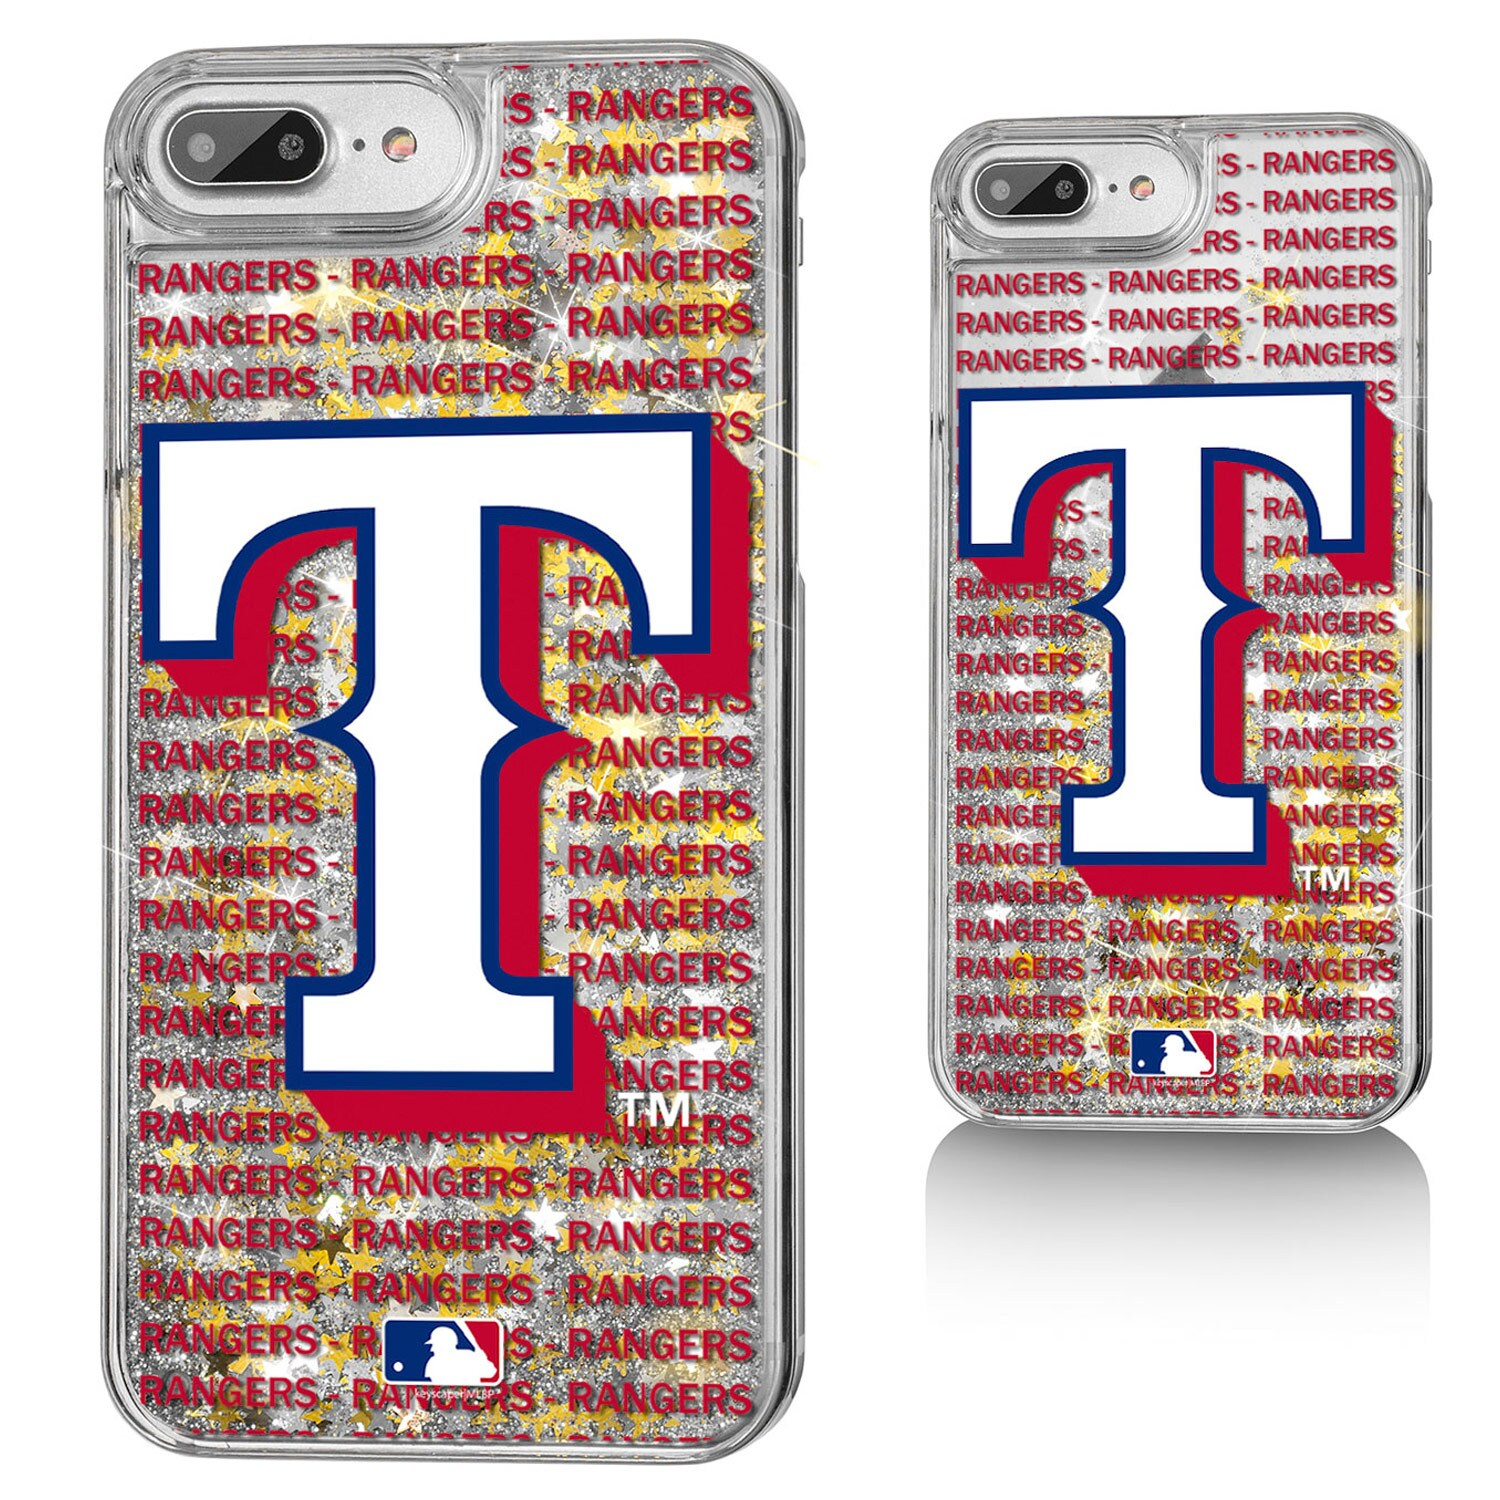 Texas Rangers iPhone Text Backdrop Design Case